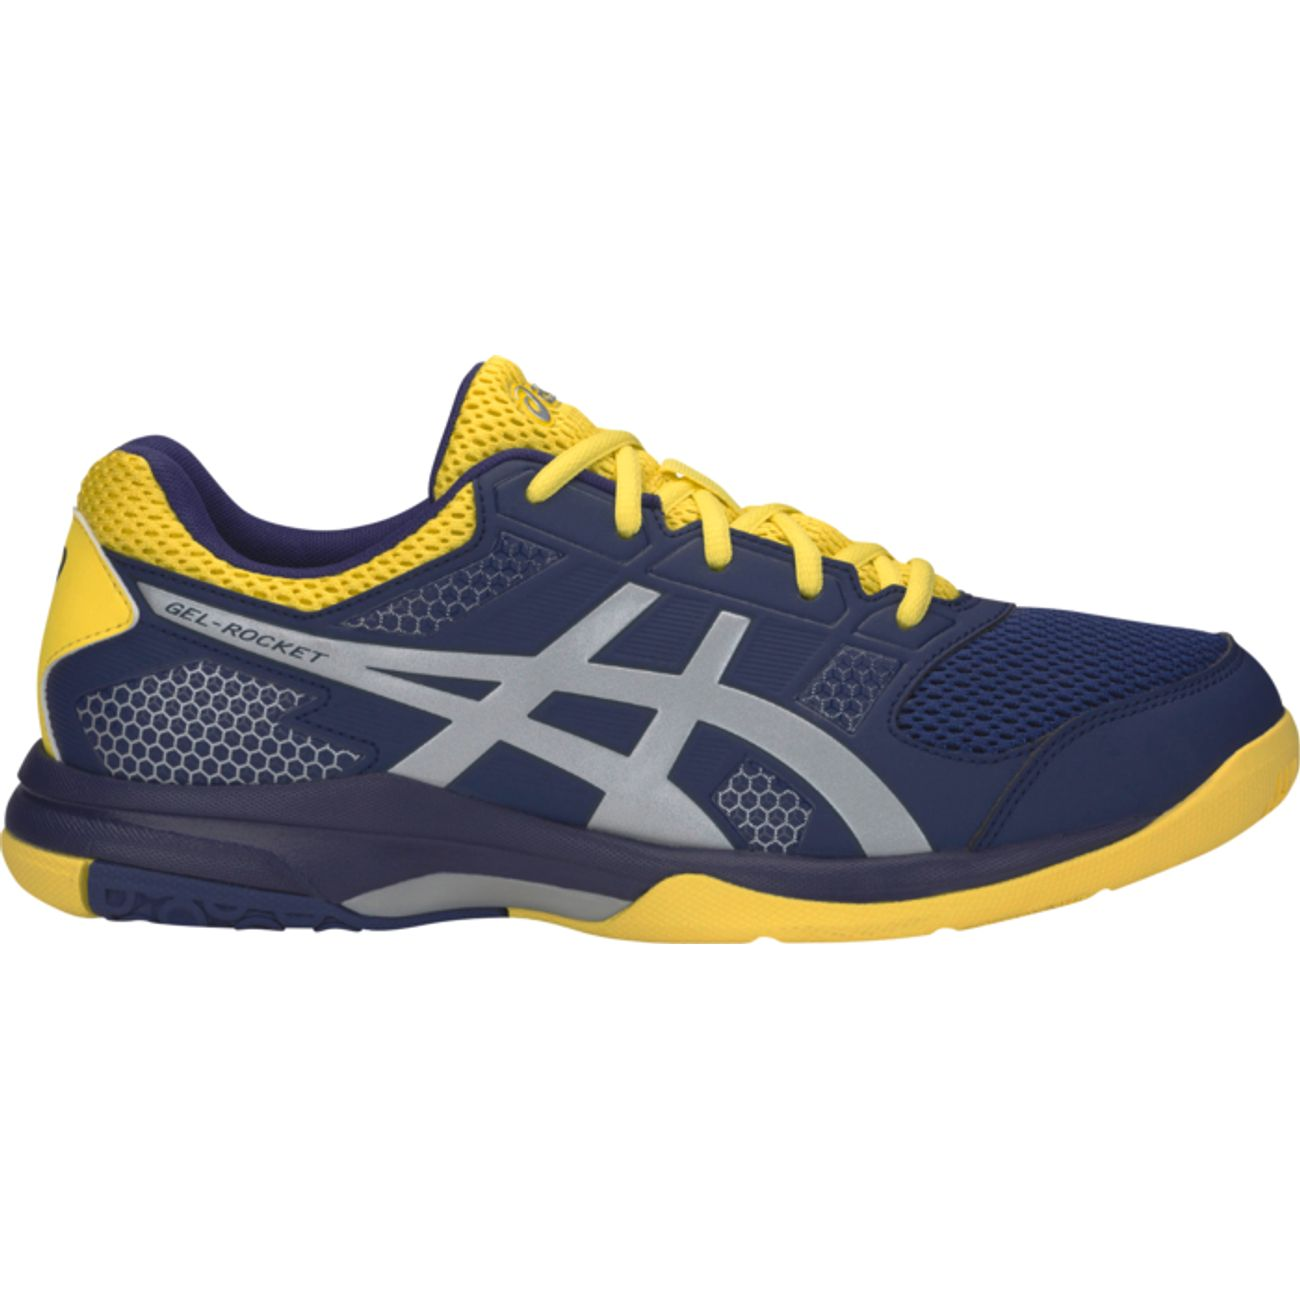 CHAUSSURES BASSES Volley homme ASICS GEL-ROCKET 8